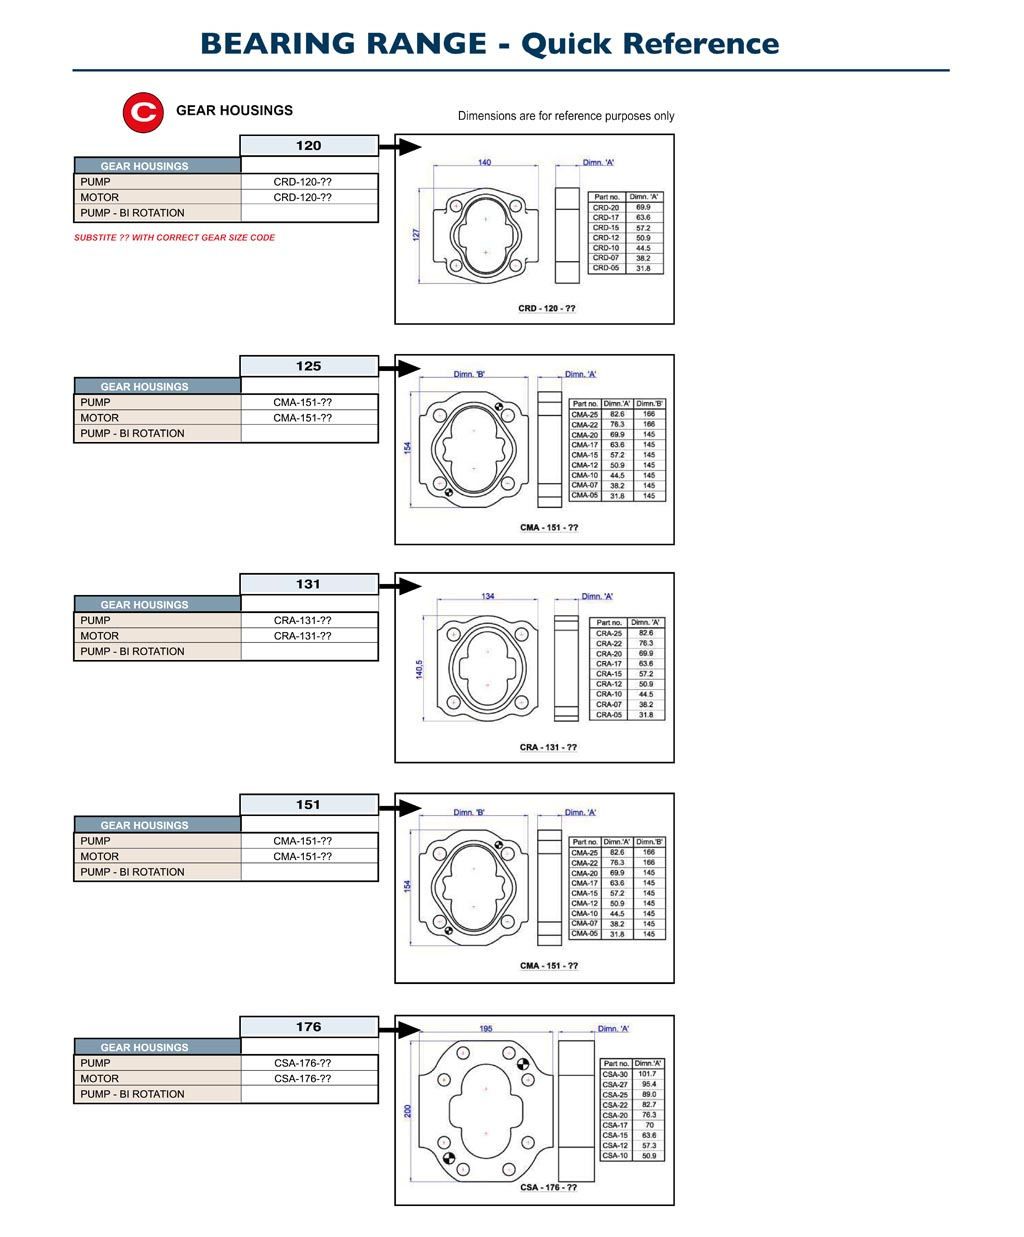 GPM Bearing Pumps Quick Reference C